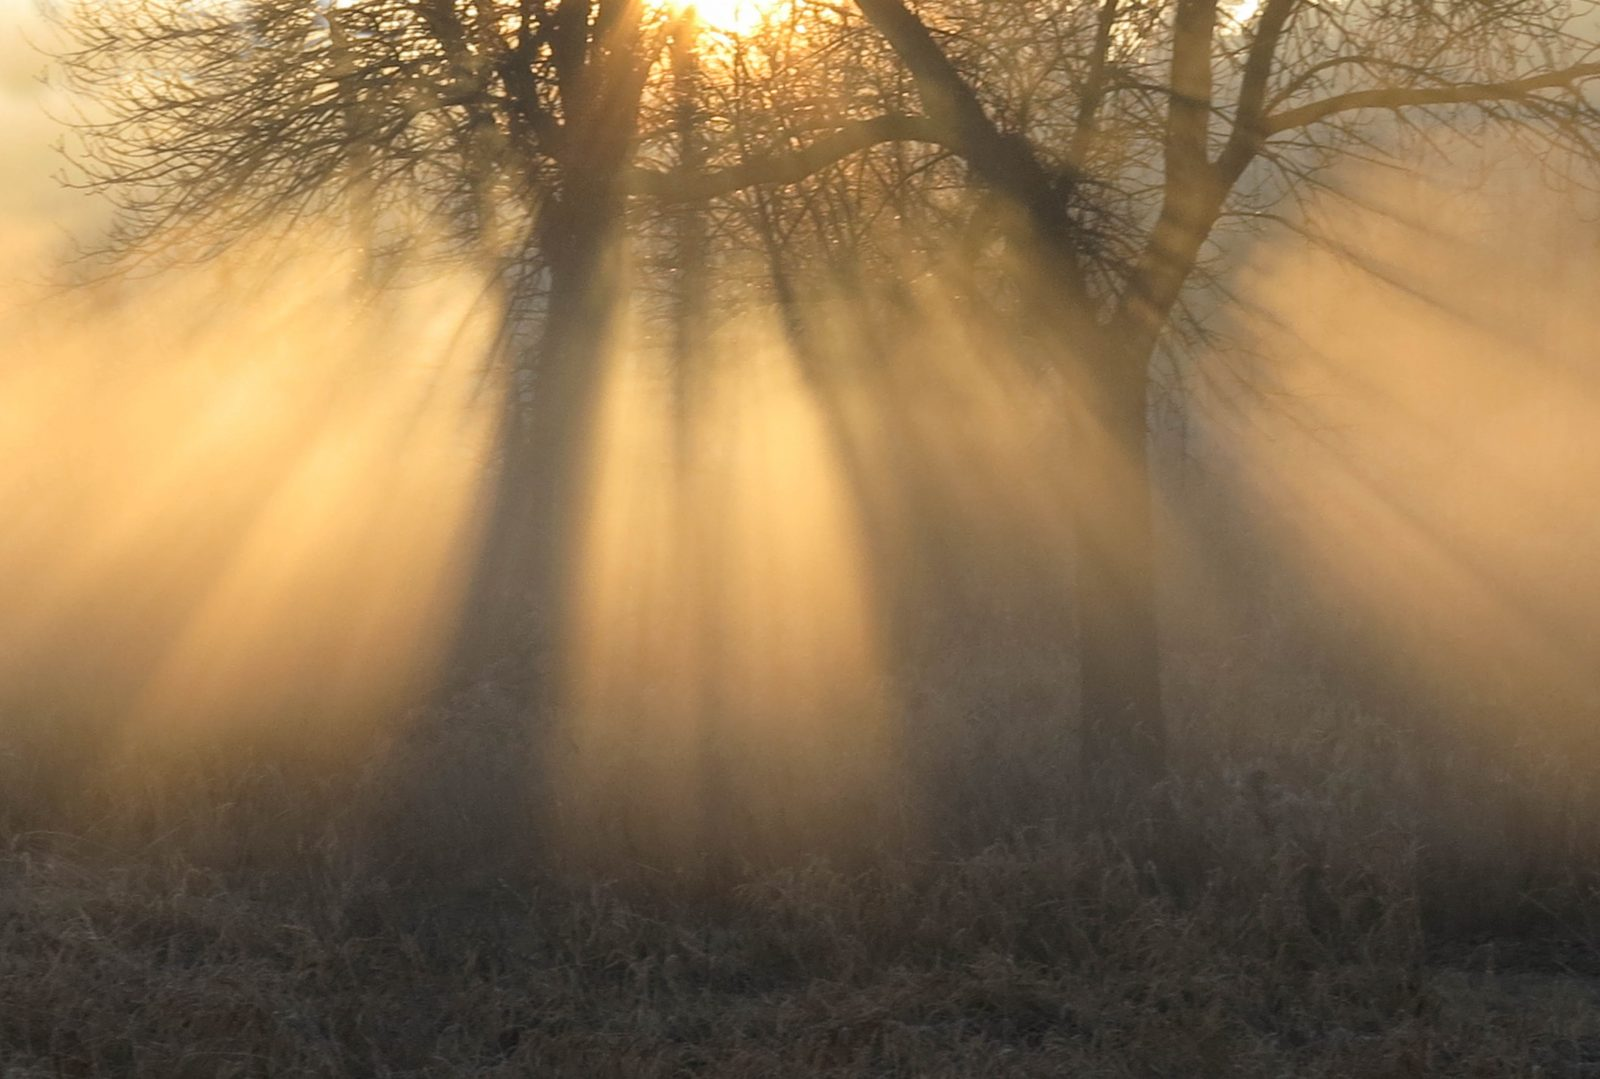 Sunlight through the Fog